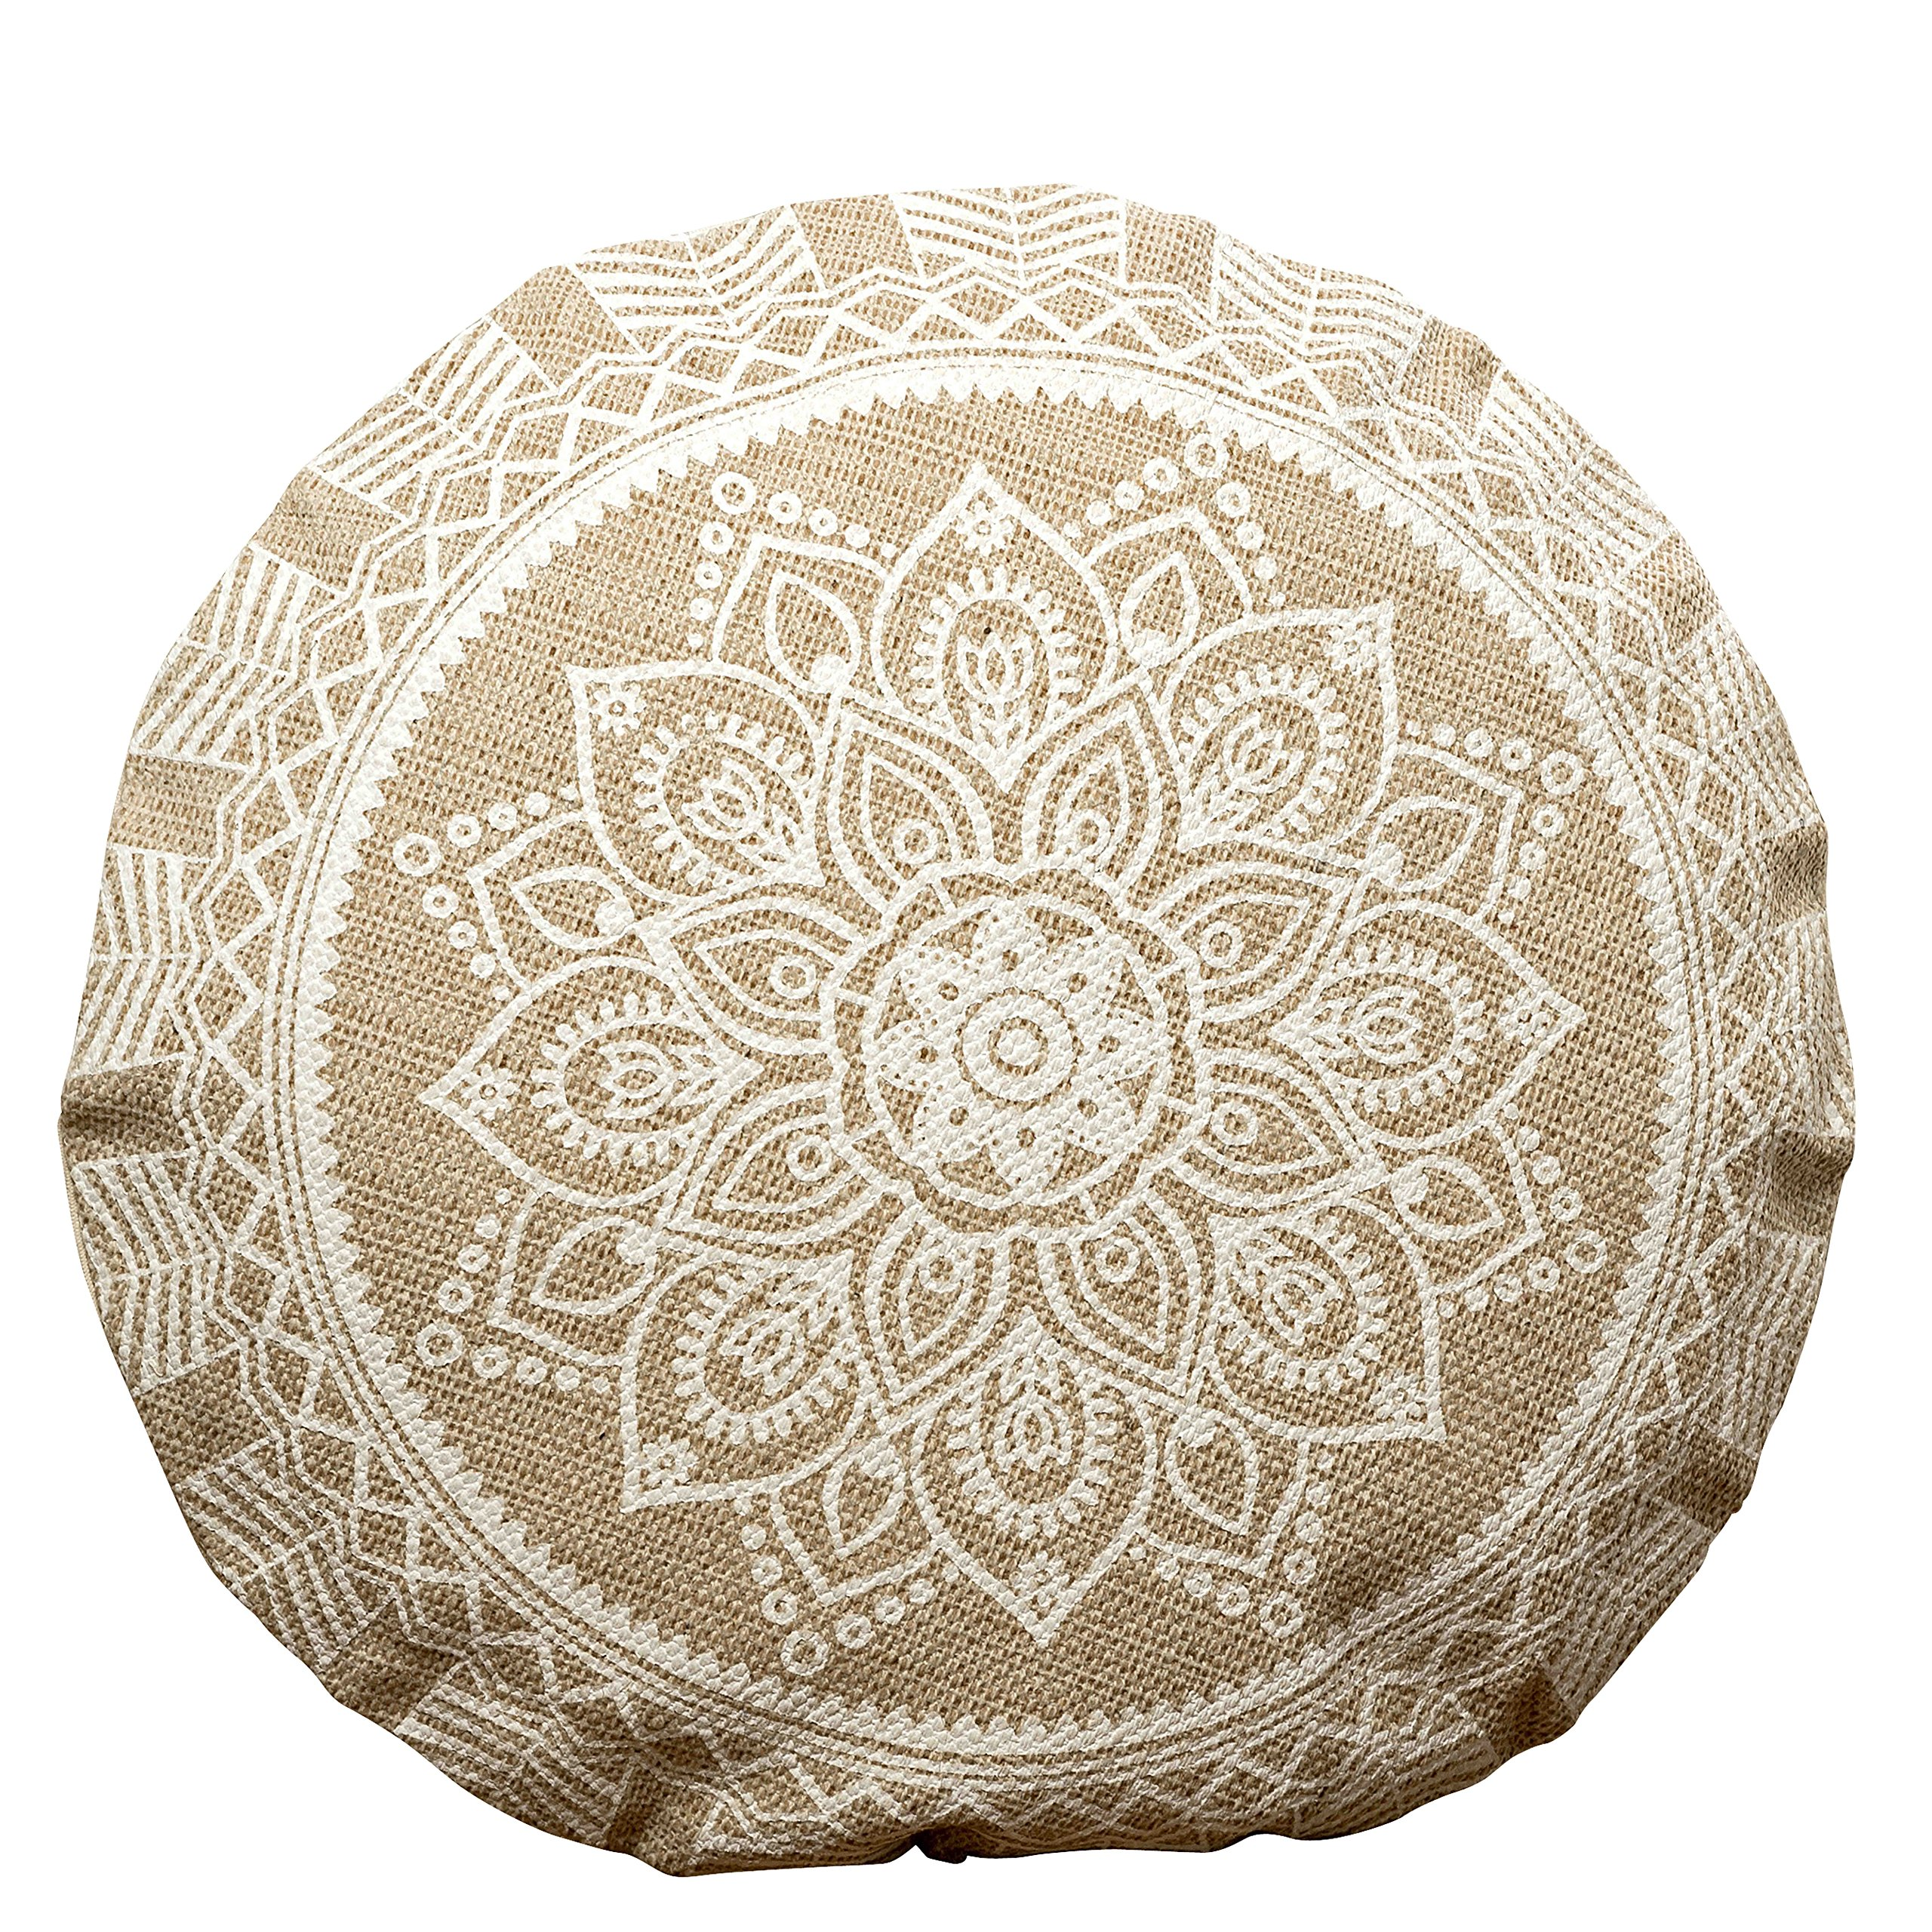 WHW Whole House Worlds The Mandala Floor Cushion, Layered Roundels, Beige and White, Woven Polyester with Cotton Cover, Polyester Fill, 22 Inches Diameter, Sun Blossom Lotus, The Boho Chic Collection by WHW Whole House Worlds